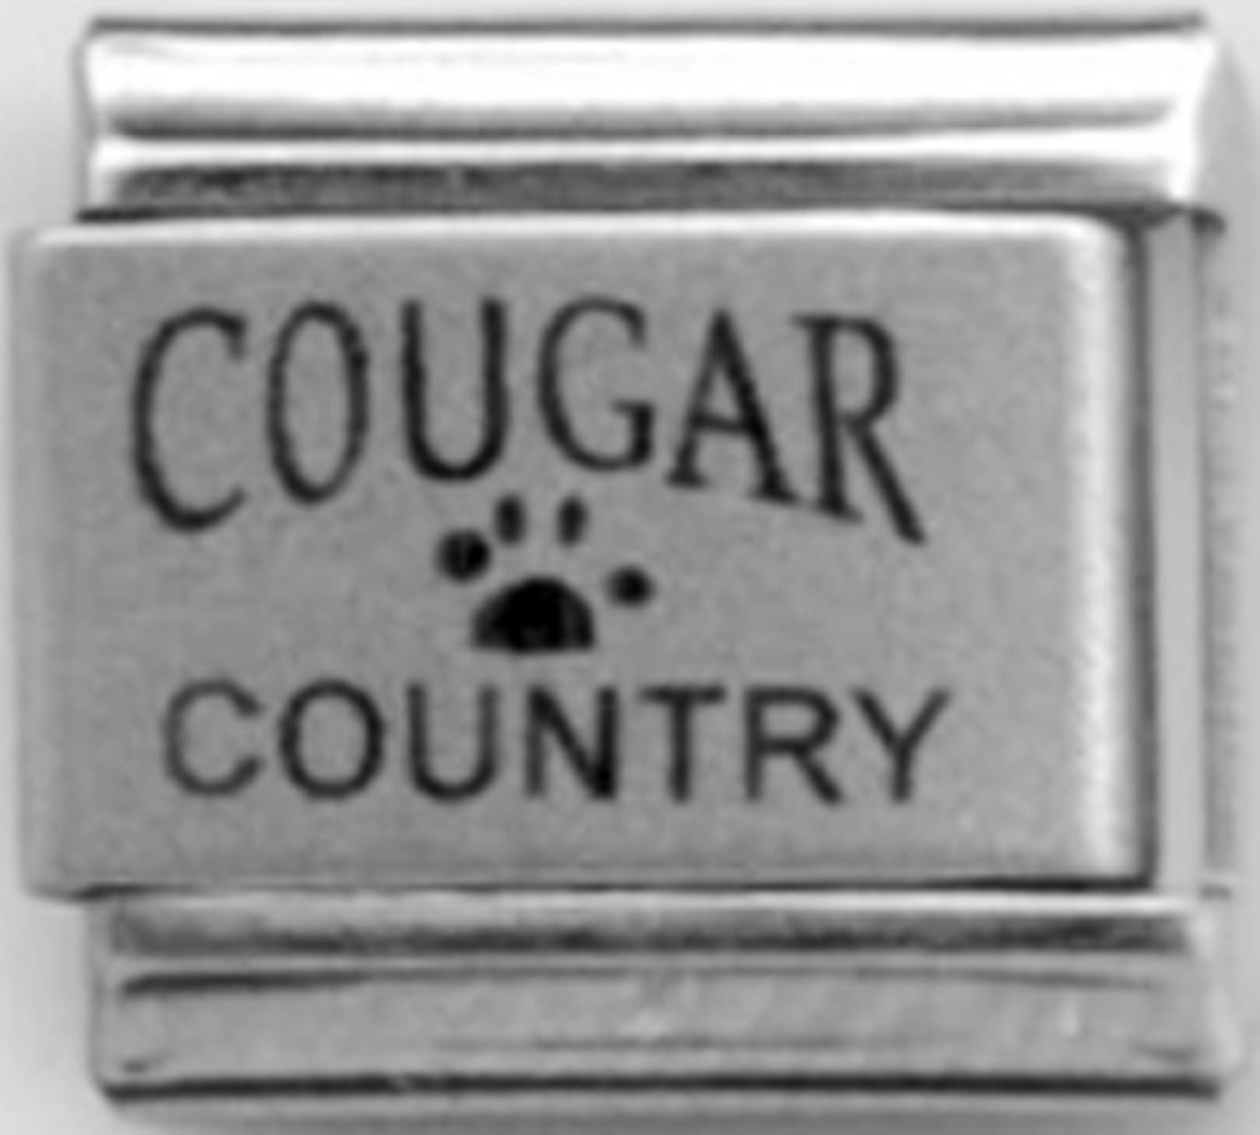 LC103-Cougar-Country